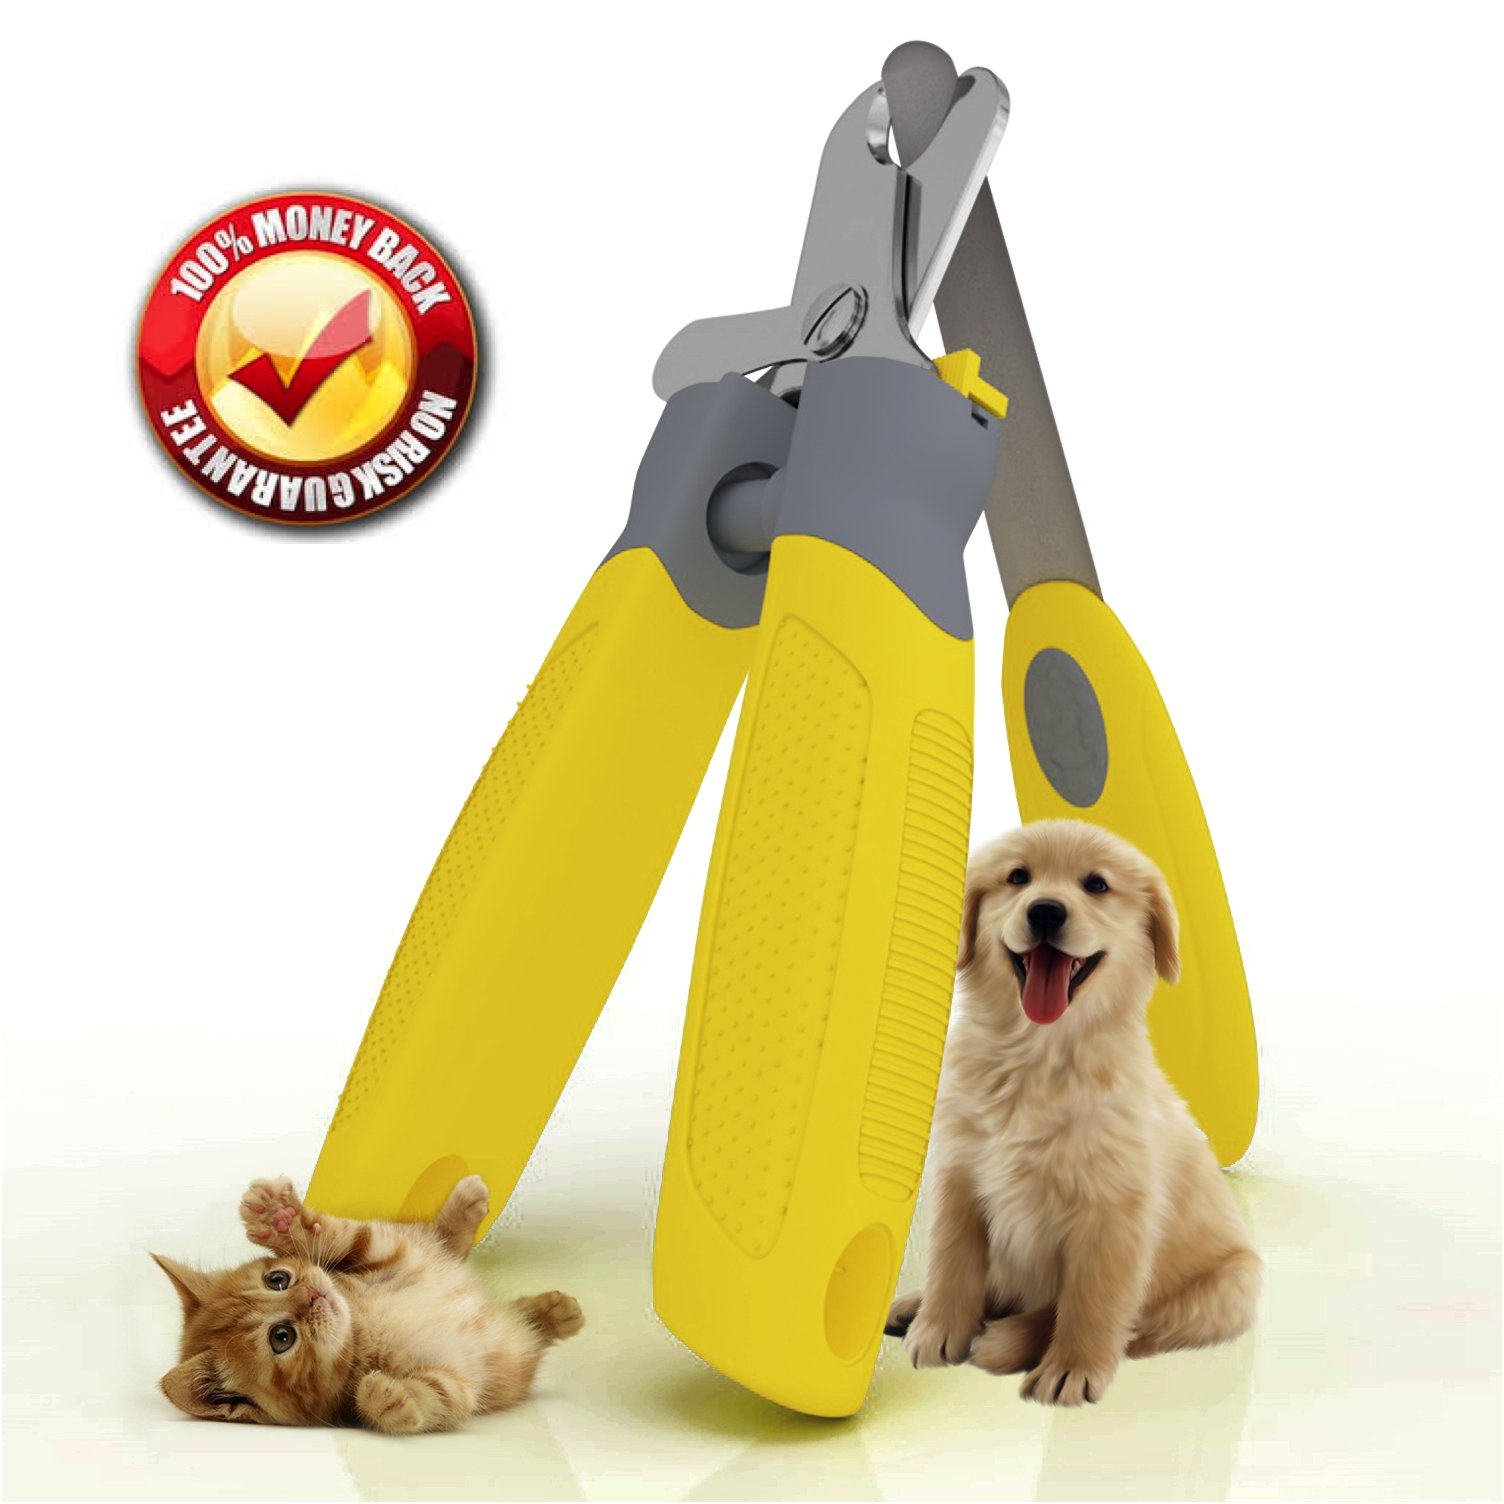 Trim-Pet Dog Nail Clippers ~ Professional Vet Quality ~ Razor Sharp Stainless Steel Blades With Safety Guard ~ Ergonomic Designed Handles For Easy Precise Cutting ~ Groom Small, Medium Or Large Dogs And Cats ~ Nail Trimmers Designed By Veterinarians ~ Tri